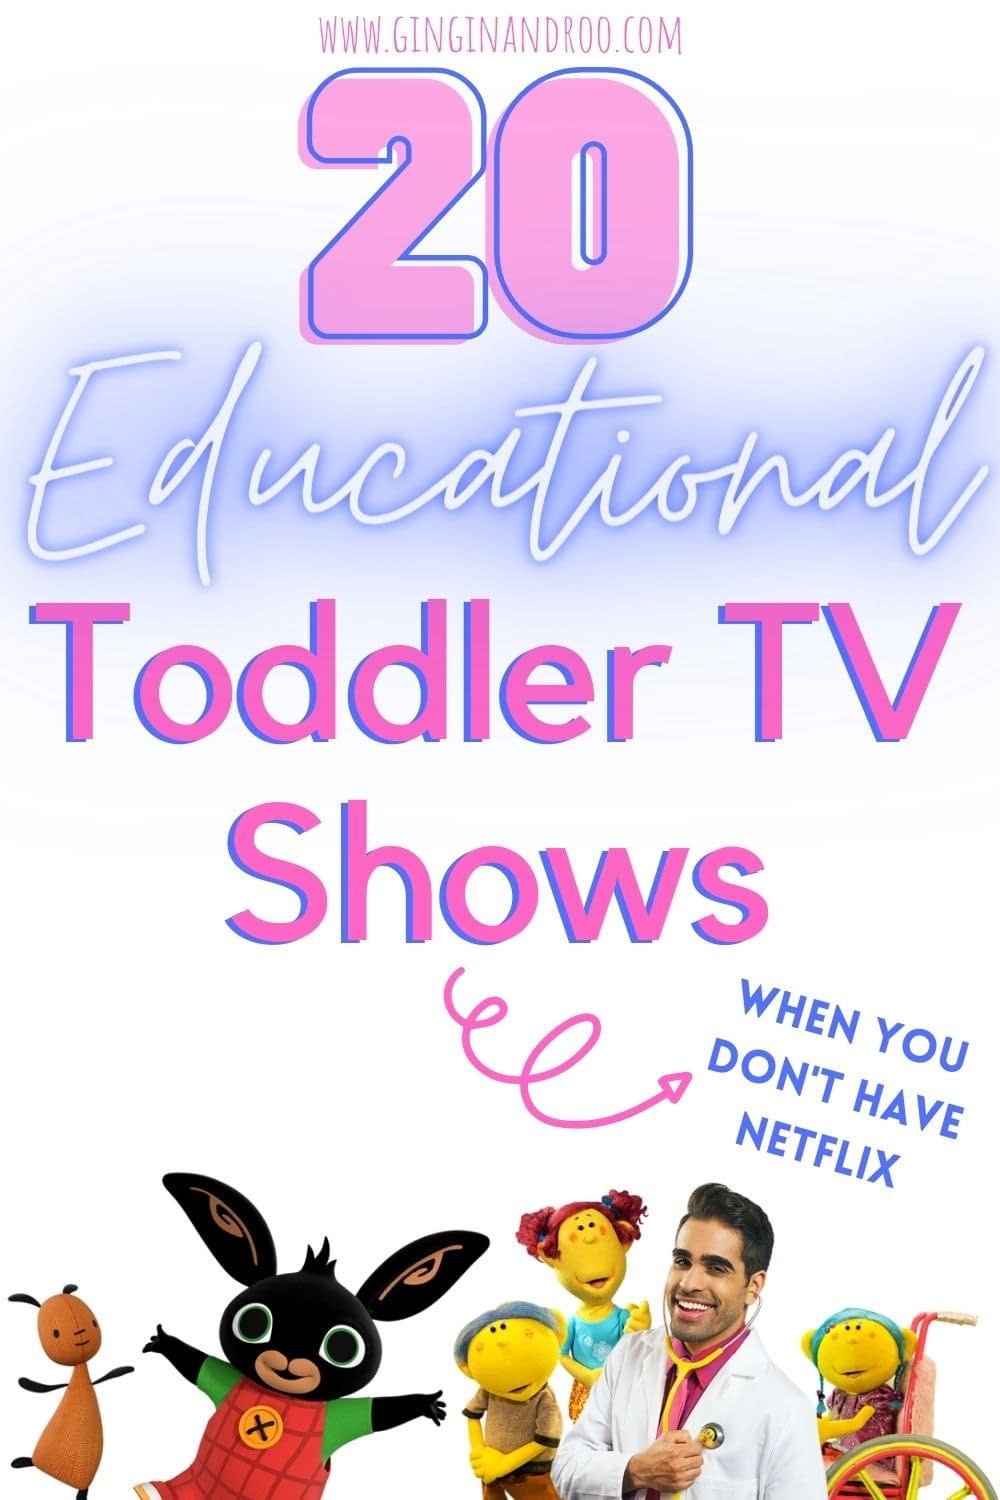 Don't have Netflix but want great toddler TV shows? Here's 20 brilliant toddler TV shows that will help with your child's learning and development for free. #toddlertips #toddlerTVshows #toddlerparenting